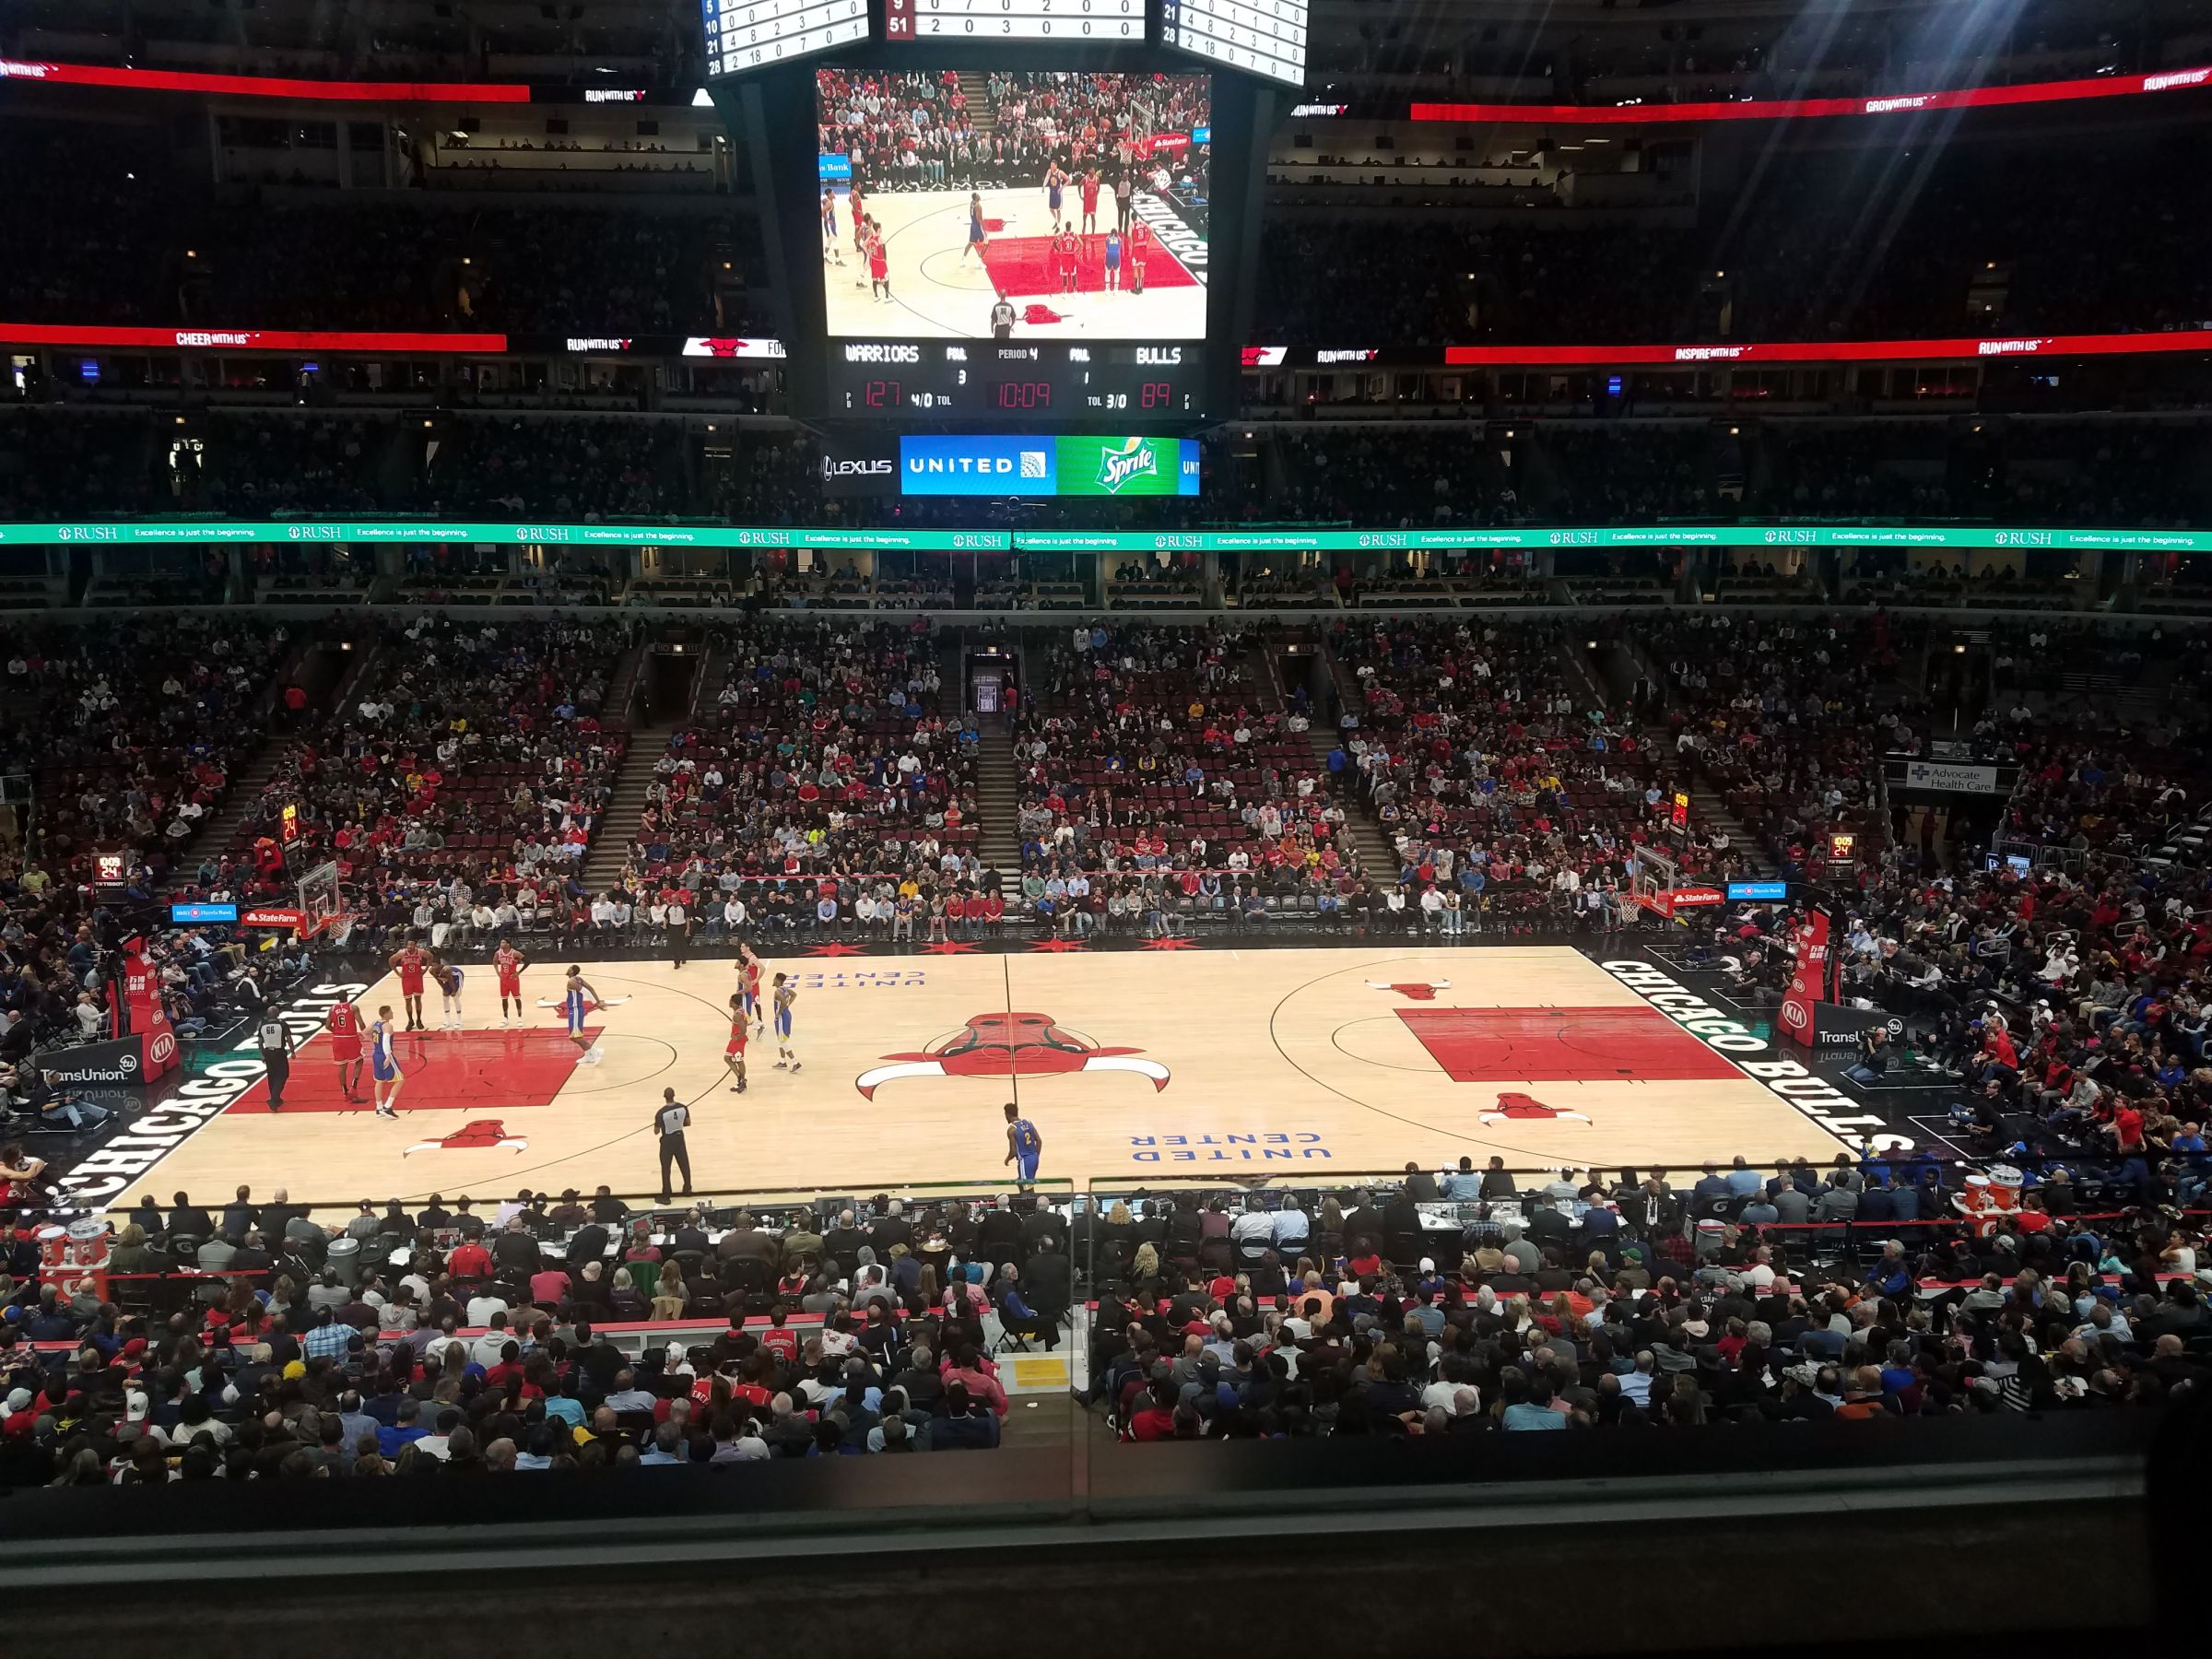 Chicago Bulls Seat View for United Center Section 234, Row 2, Seat 20